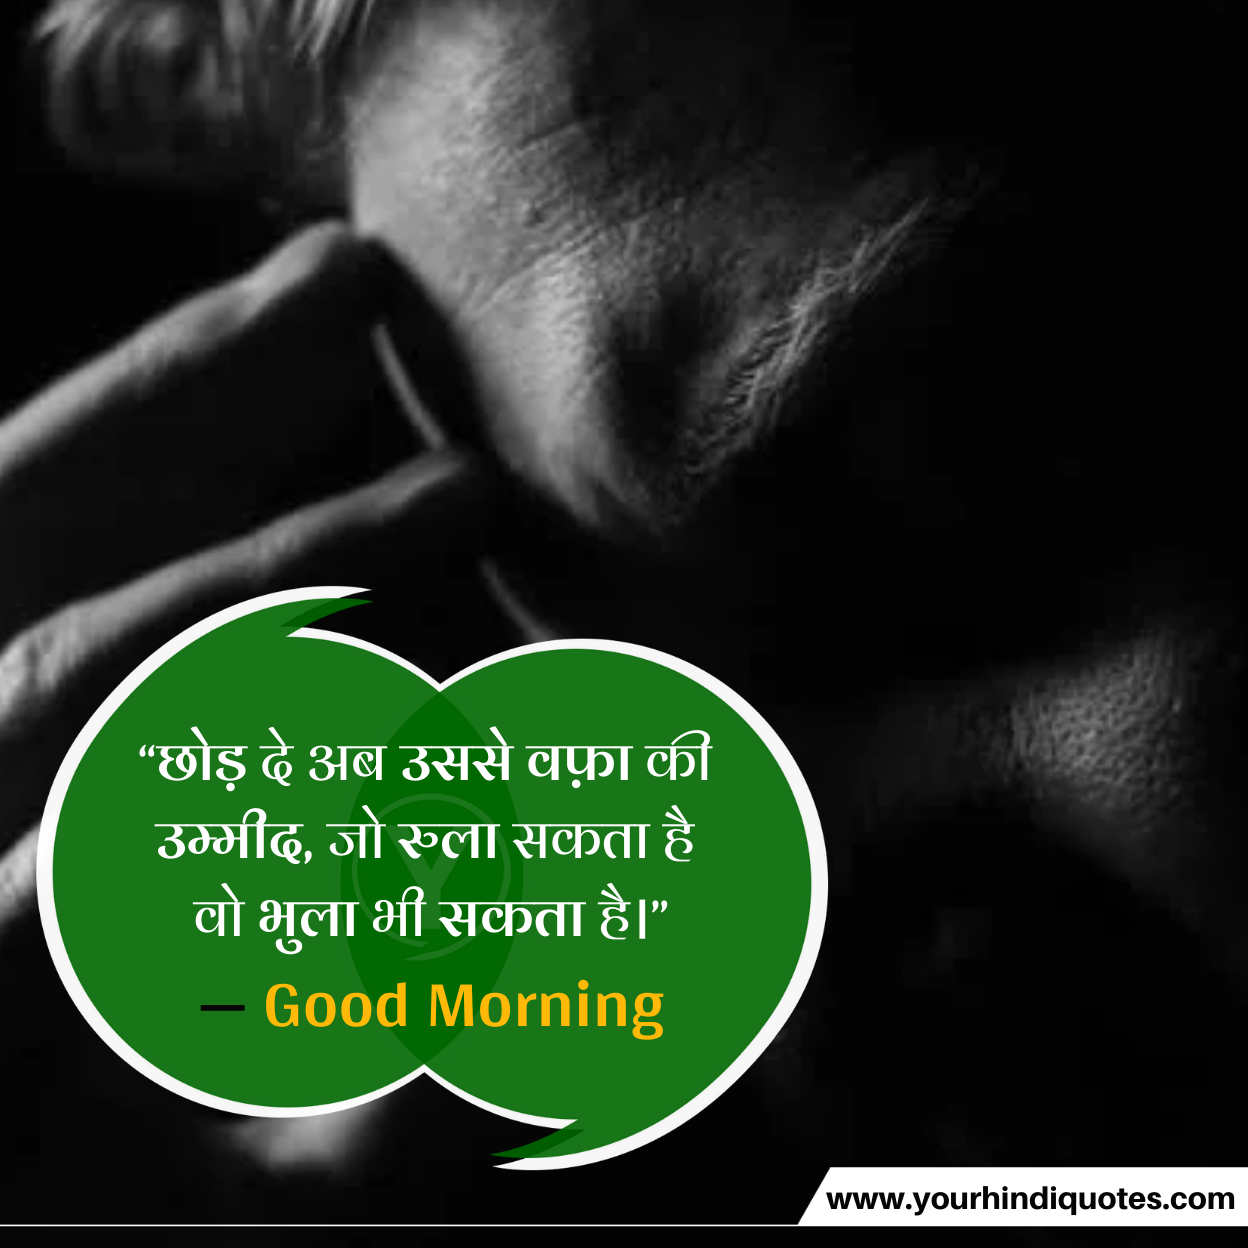 Hindi Good Morning Thoughts Pictures